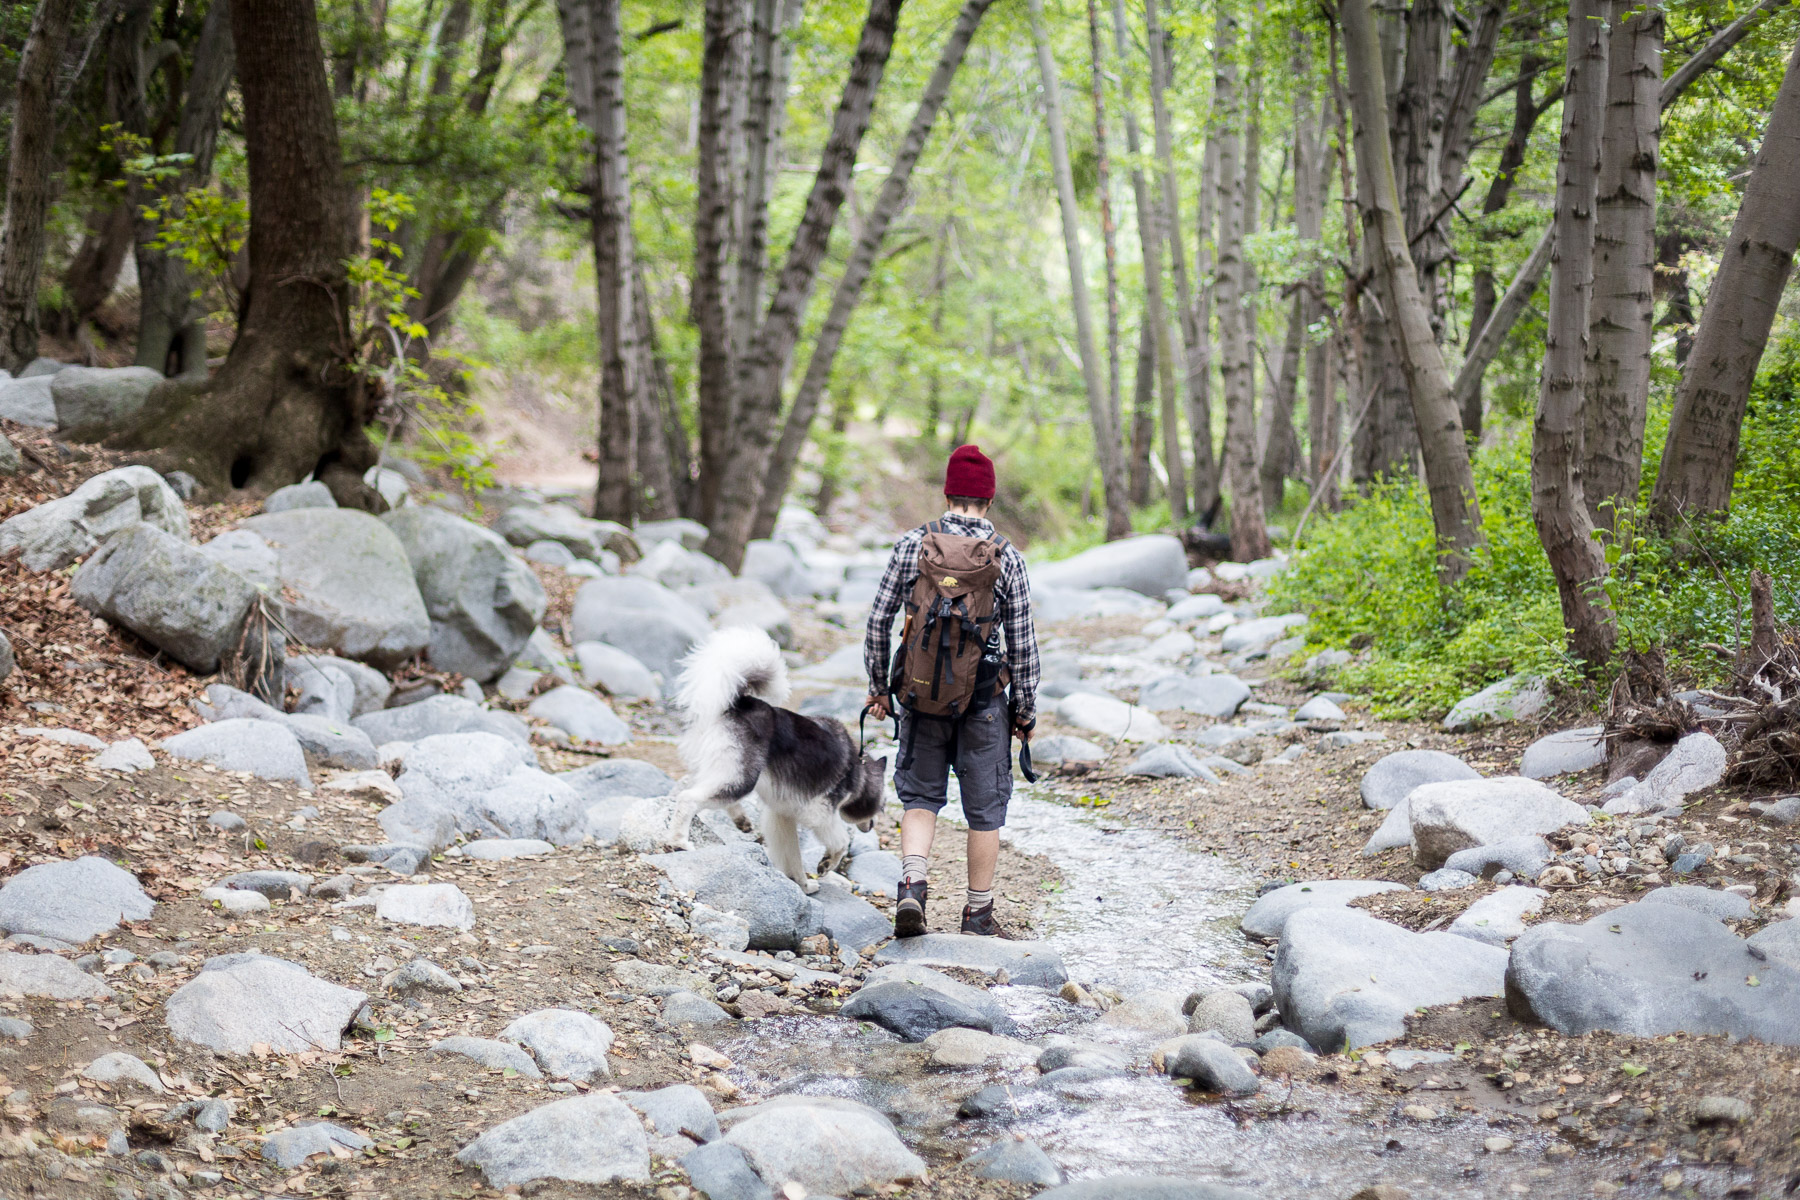 owner-and-dog-hiking-together-creek-animal-photography.jpg